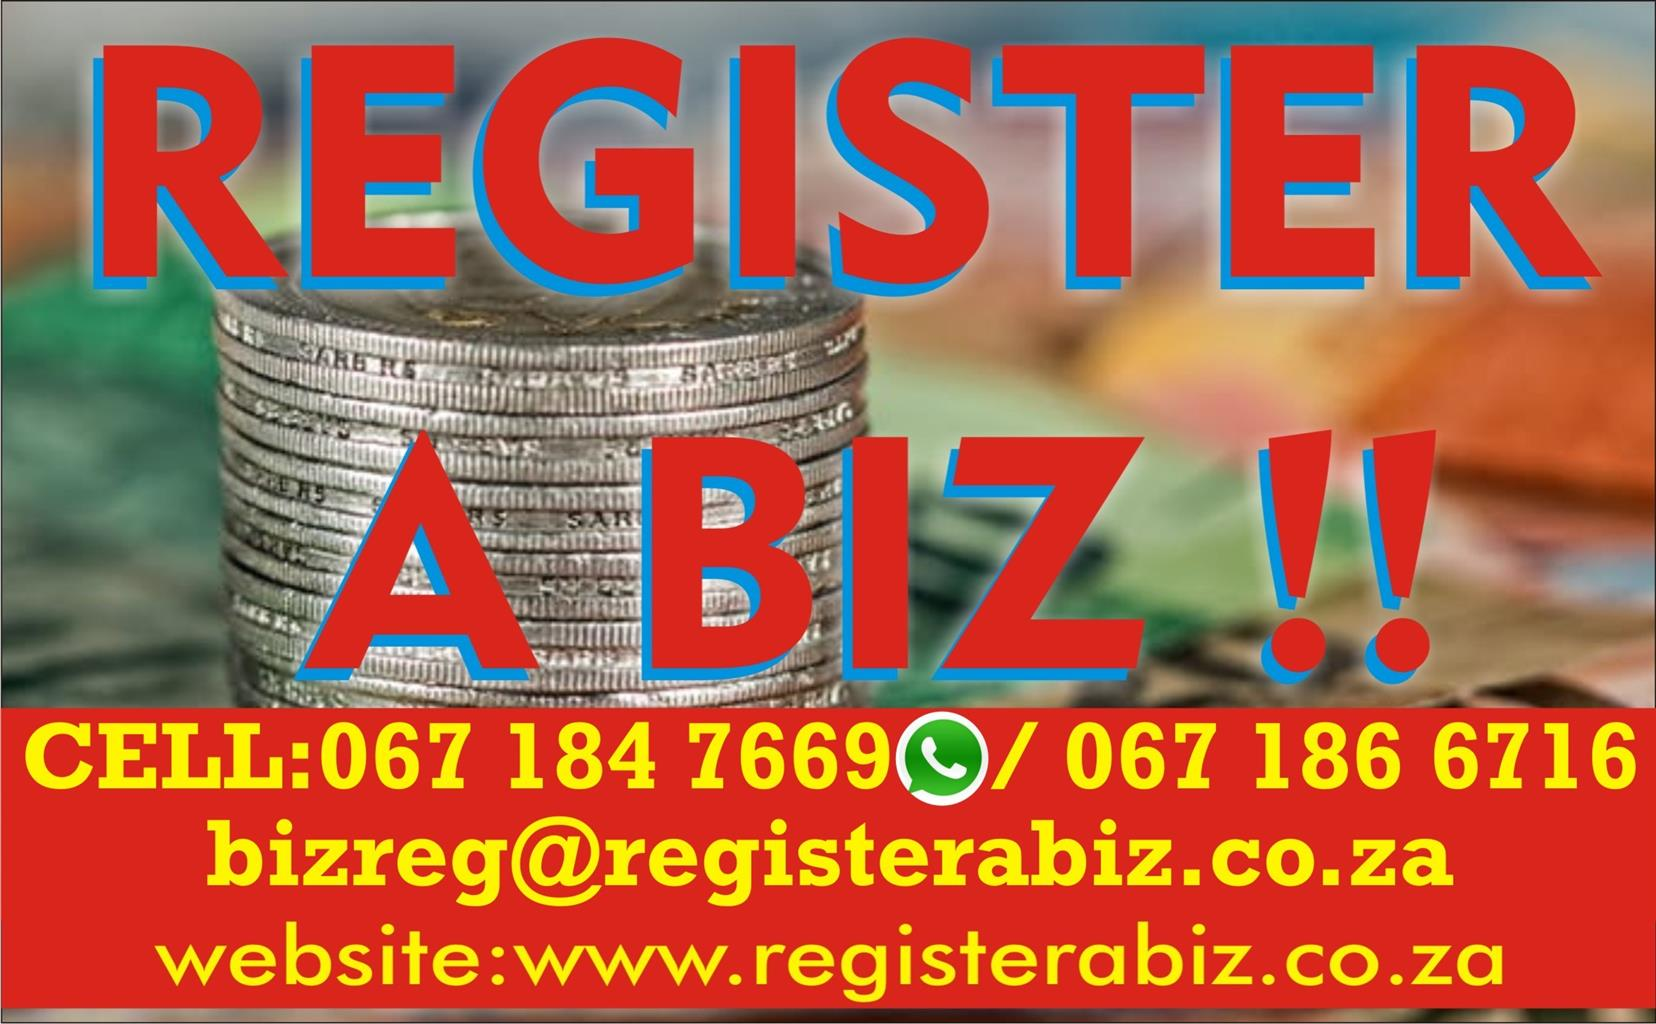 START YOUR OWN BUSINESS FOR R1500 & RECEIVE GOVT TENDERS